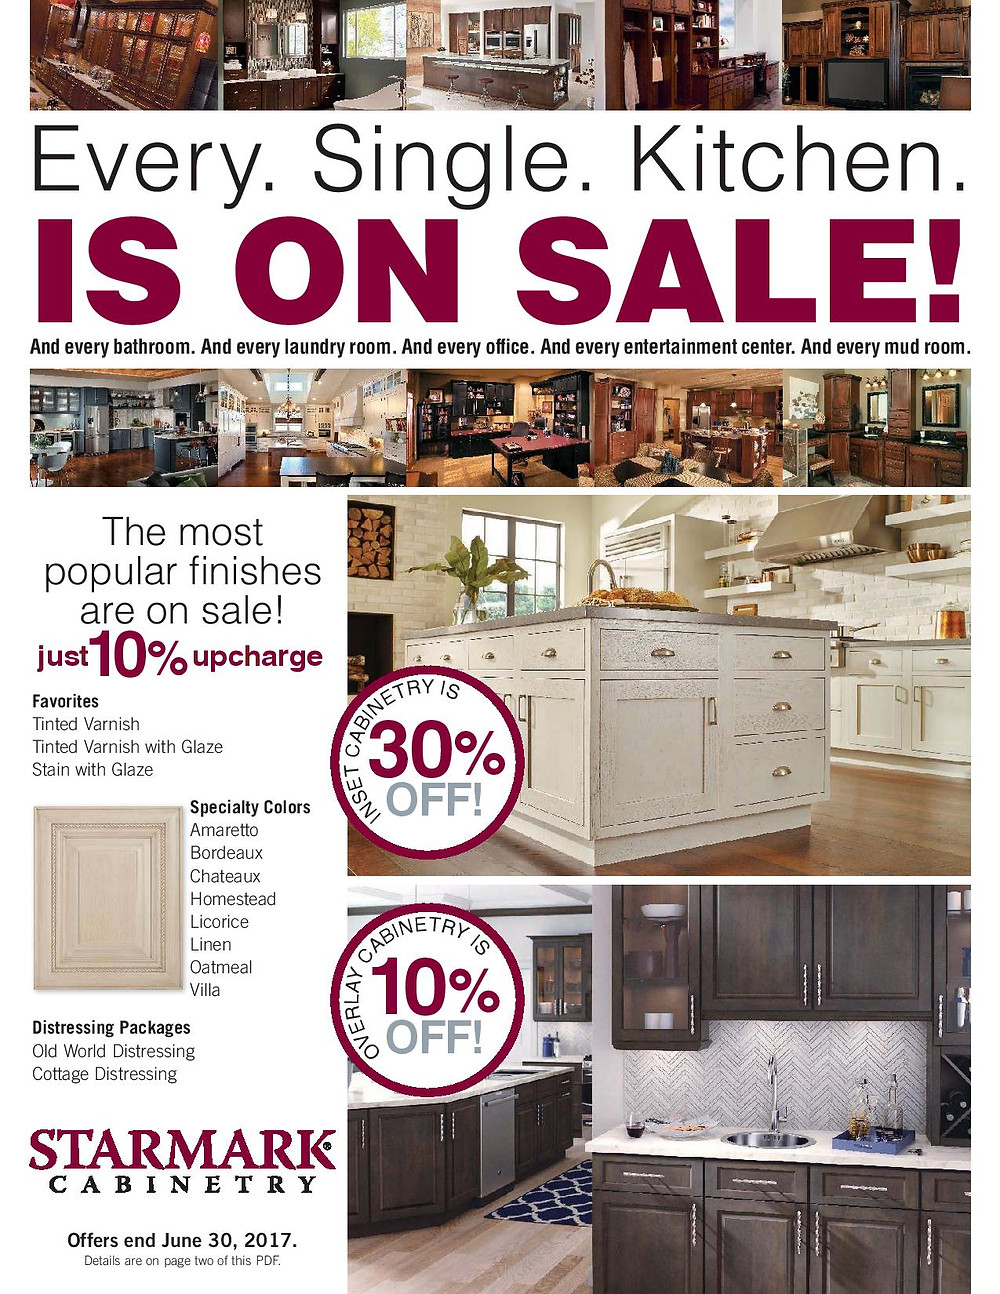 StarMark Cabinetry current promotion list